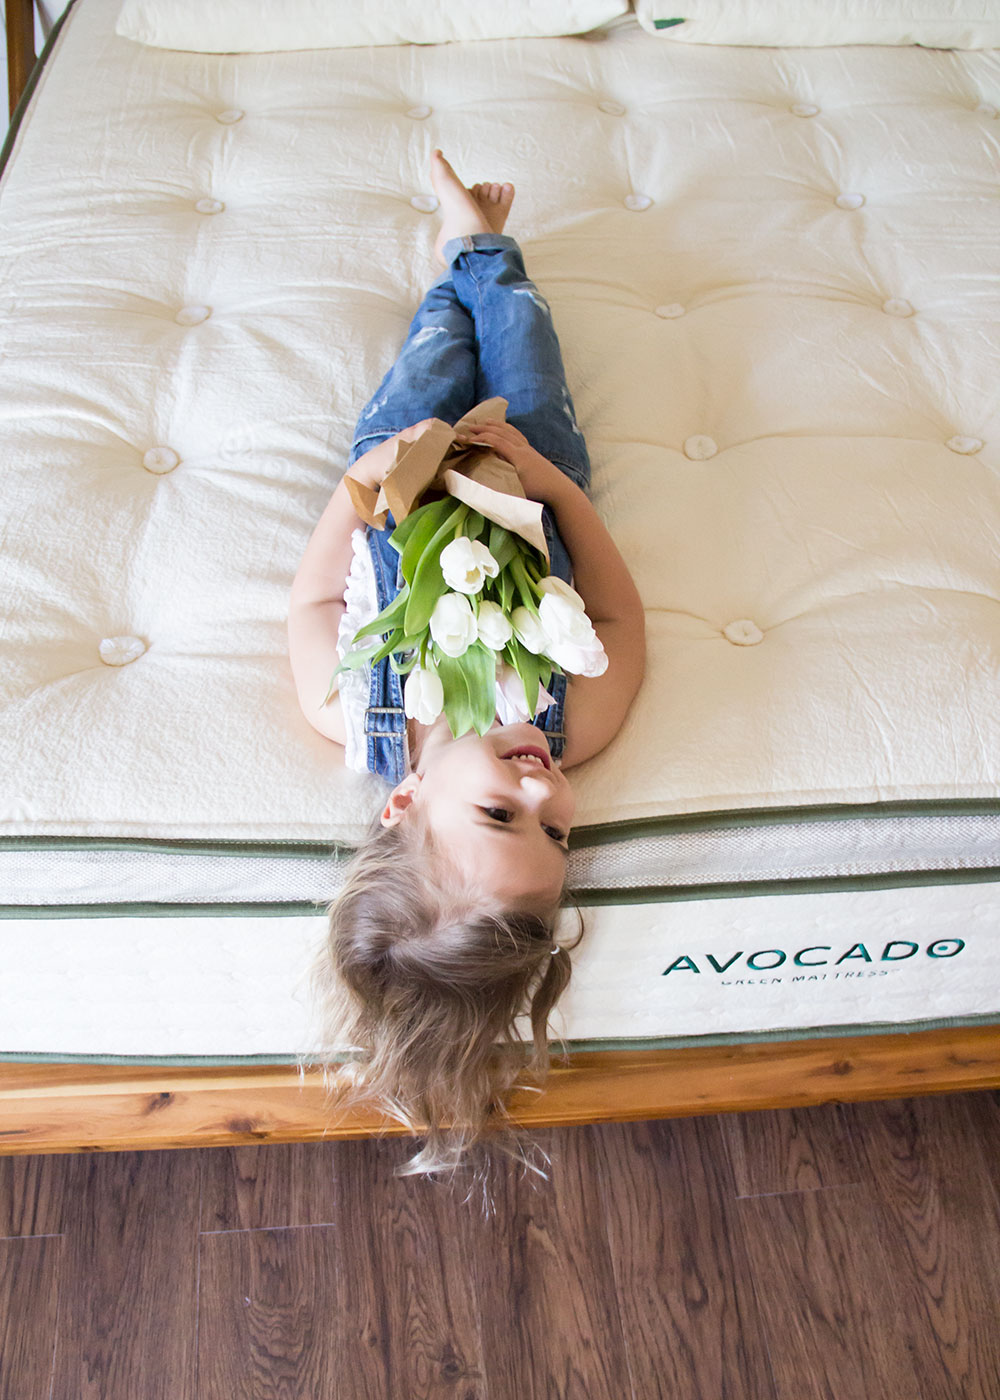 my sweet little girl holding her tulips on our new avocado green mattress. my review here! | thelovedesignedlife.com #tulips #mattress #greenliving